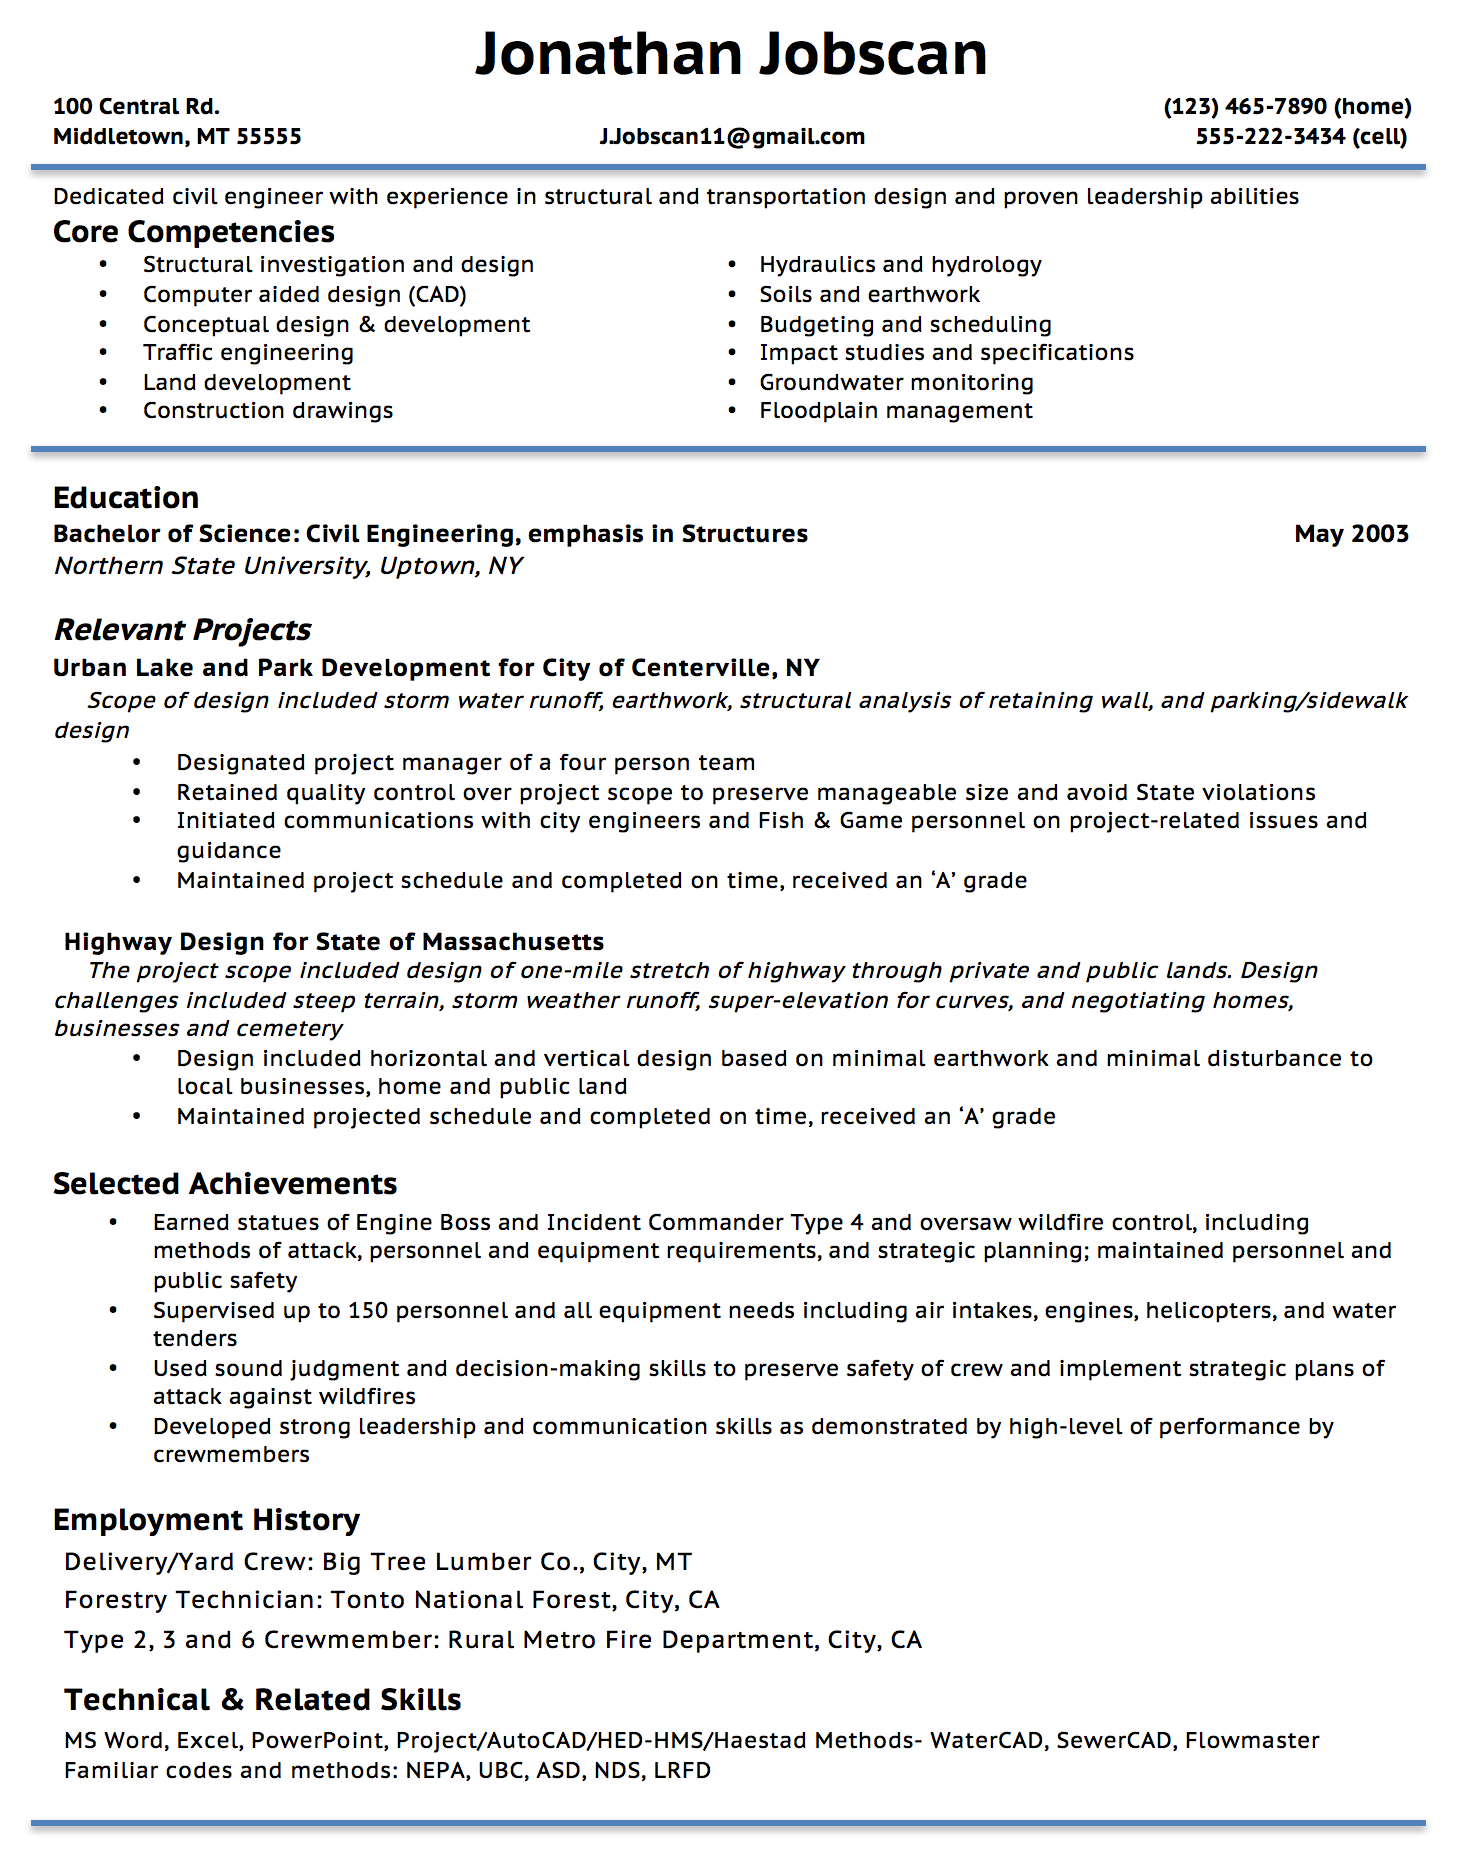 Opposenewapstandardsus  Sweet Resume Writing Guide  Jobscan With Inspiring Example Of A Functional Resume Format With Lovely Property Manager Resumes Also Writing Objective For Resume In Addition Senior Accountant Resume Sample And Resume For Construction Project Manager As Well As Graphic Design Resume Example Additionally Employment History Resume From Jobscanco With Opposenewapstandardsus  Inspiring Resume Writing Guide  Jobscan With Lovely Example Of A Functional Resume Format And Sweet Property Manager Resumes Also Writing Objective For Resume In Addition Senior Accountant Resume Sample From Jobscanco